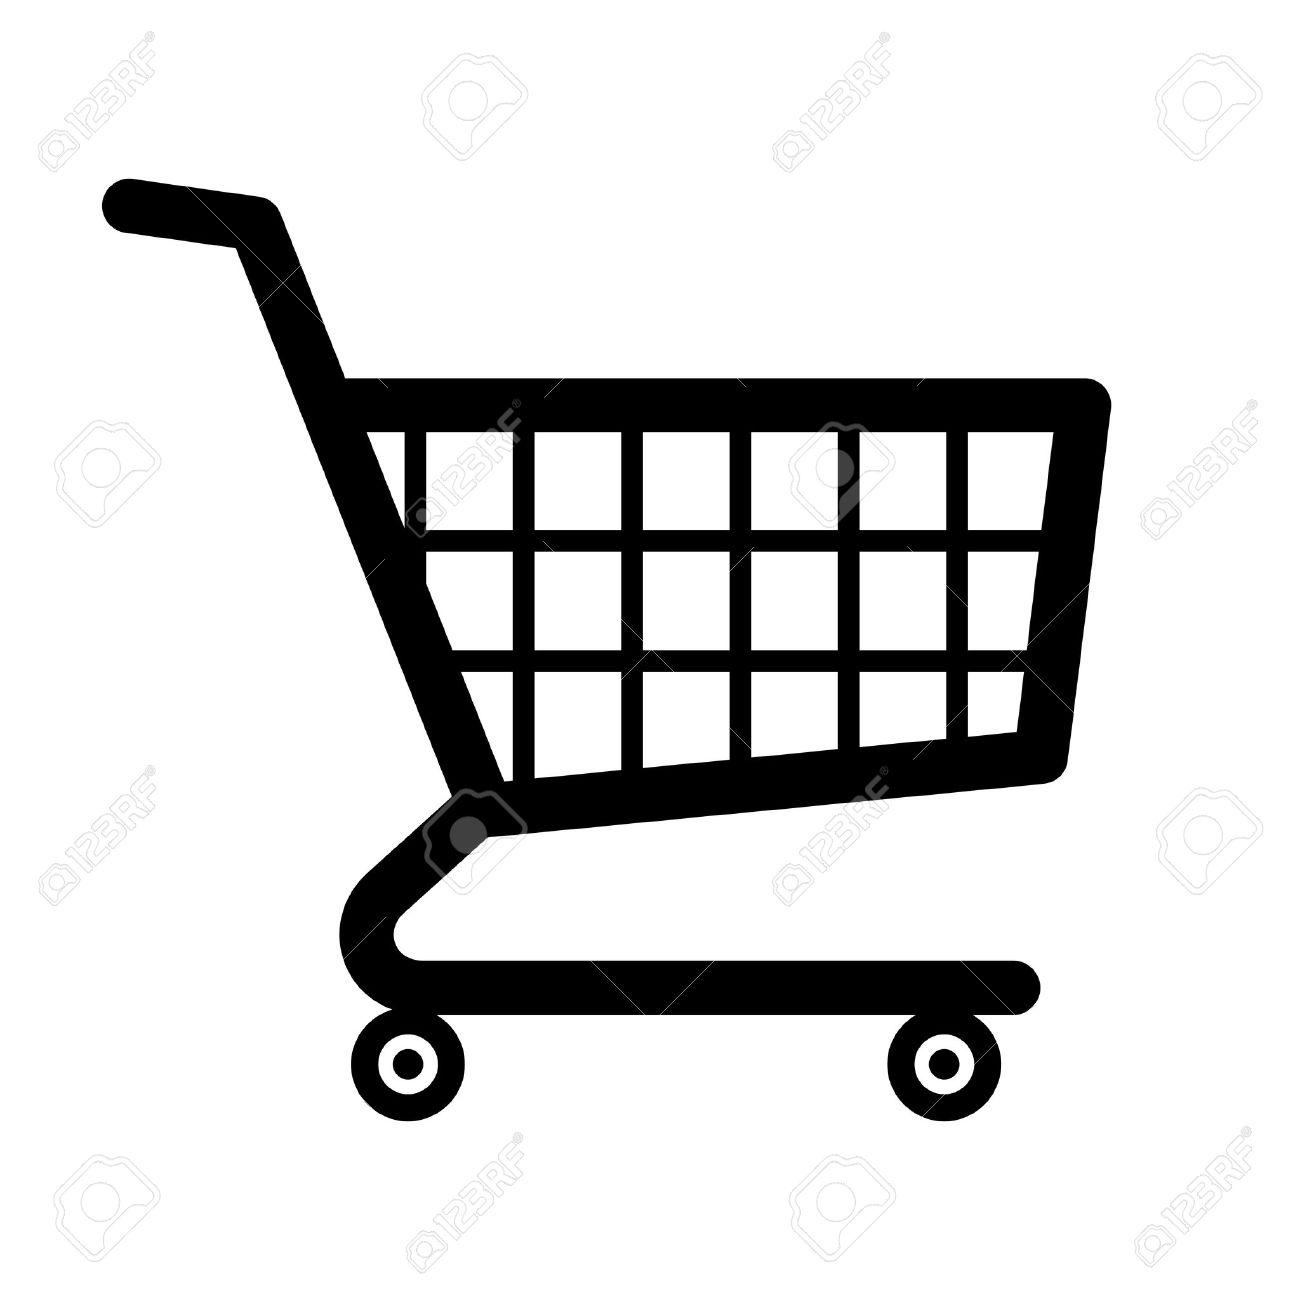 shopping cart icon royalty free cliparts, vectors, and stockshopping cart icon